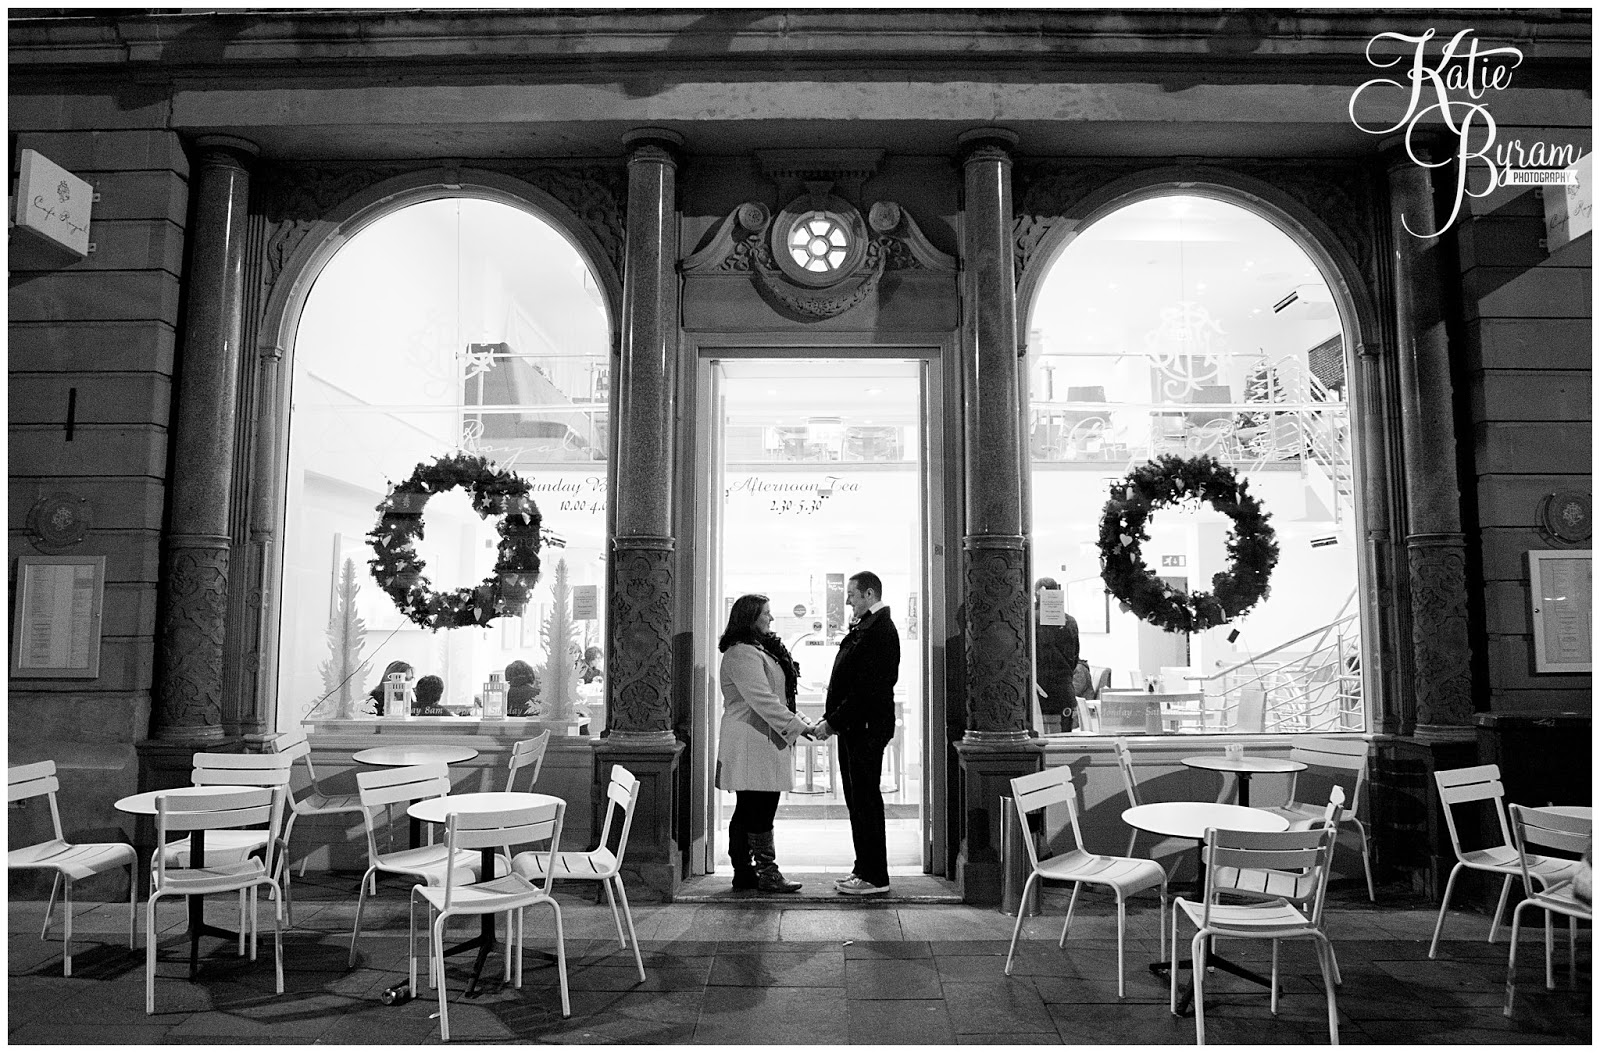 newcastle quayside engagement, newcastle pre-wedding shoot, newcastle quayside portraits, tyne bride engagement, christmas in newcastle, fenwicks window, millenium bridge engagement, pitcher and piano newcastle, olive and bean cafe, the baltic wedding, newcastle wedding photographer, katie byram photography